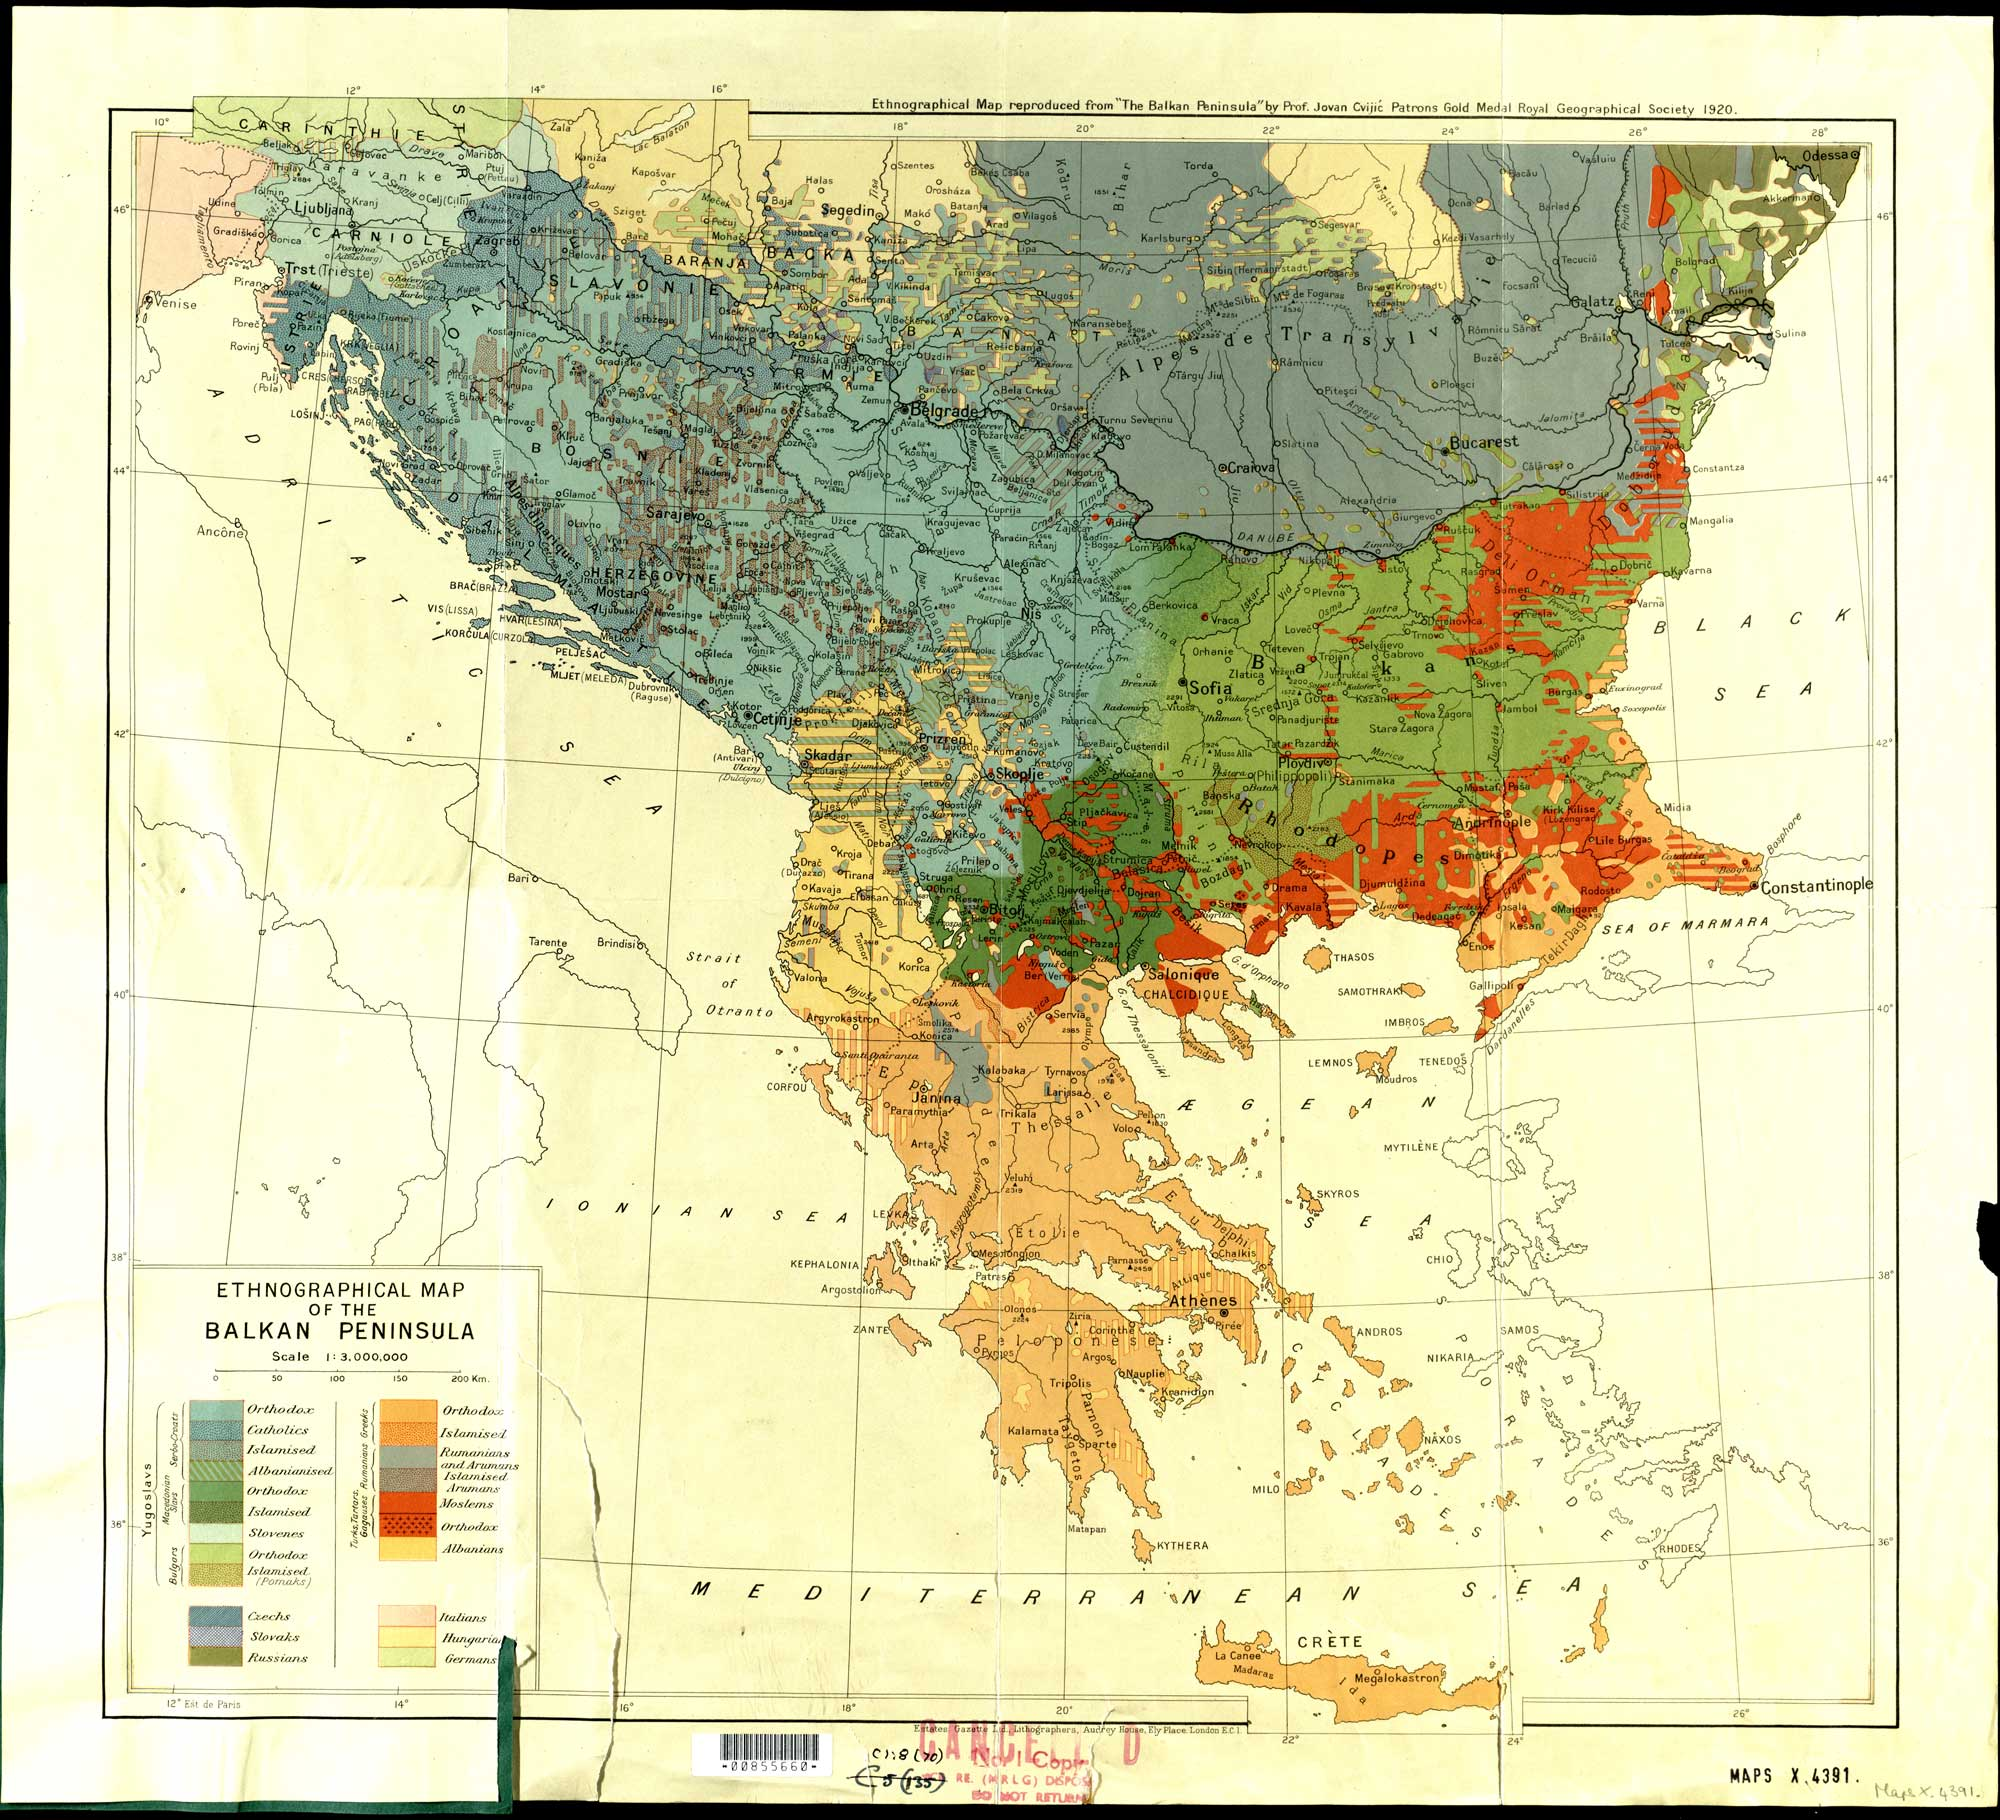 how nationalism in the balkans contributed to the outbreak of the first world war Nationalism was one of many political forces at play in the time leading up to world war i, with serbian nationalism in particular, playing a key role serbian nationalism can be dated to the mid- and late-1800s, though two precipitating nationalism events are directly linked to the start of wwi in the balkans, slavic serbs.